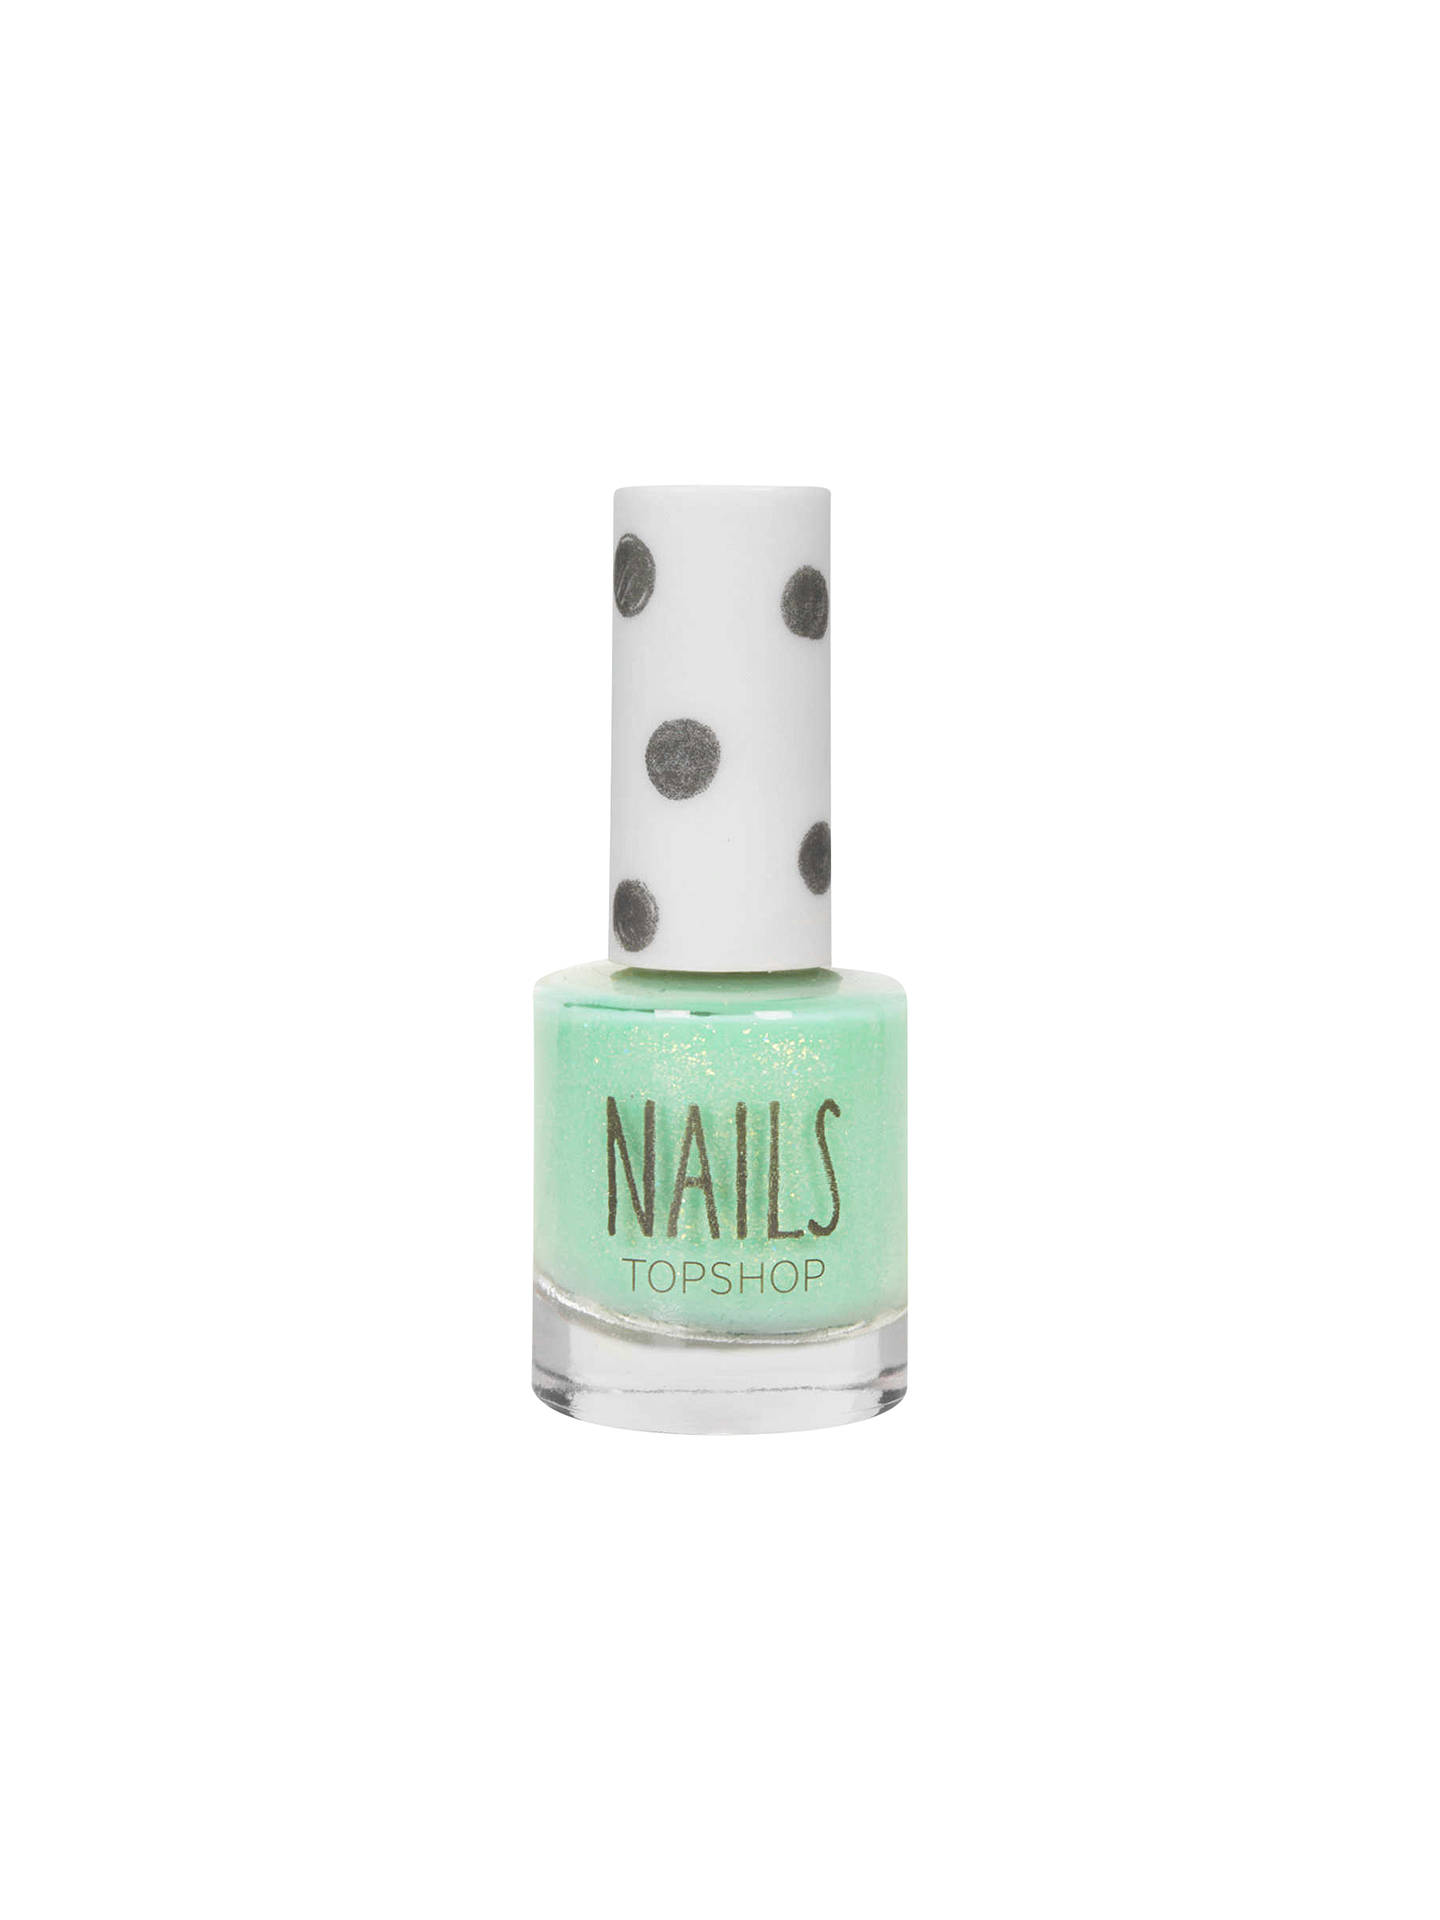 BuyTOPSHOP Nails - Pastel Glitter, Light Green Online at johnlewis.com